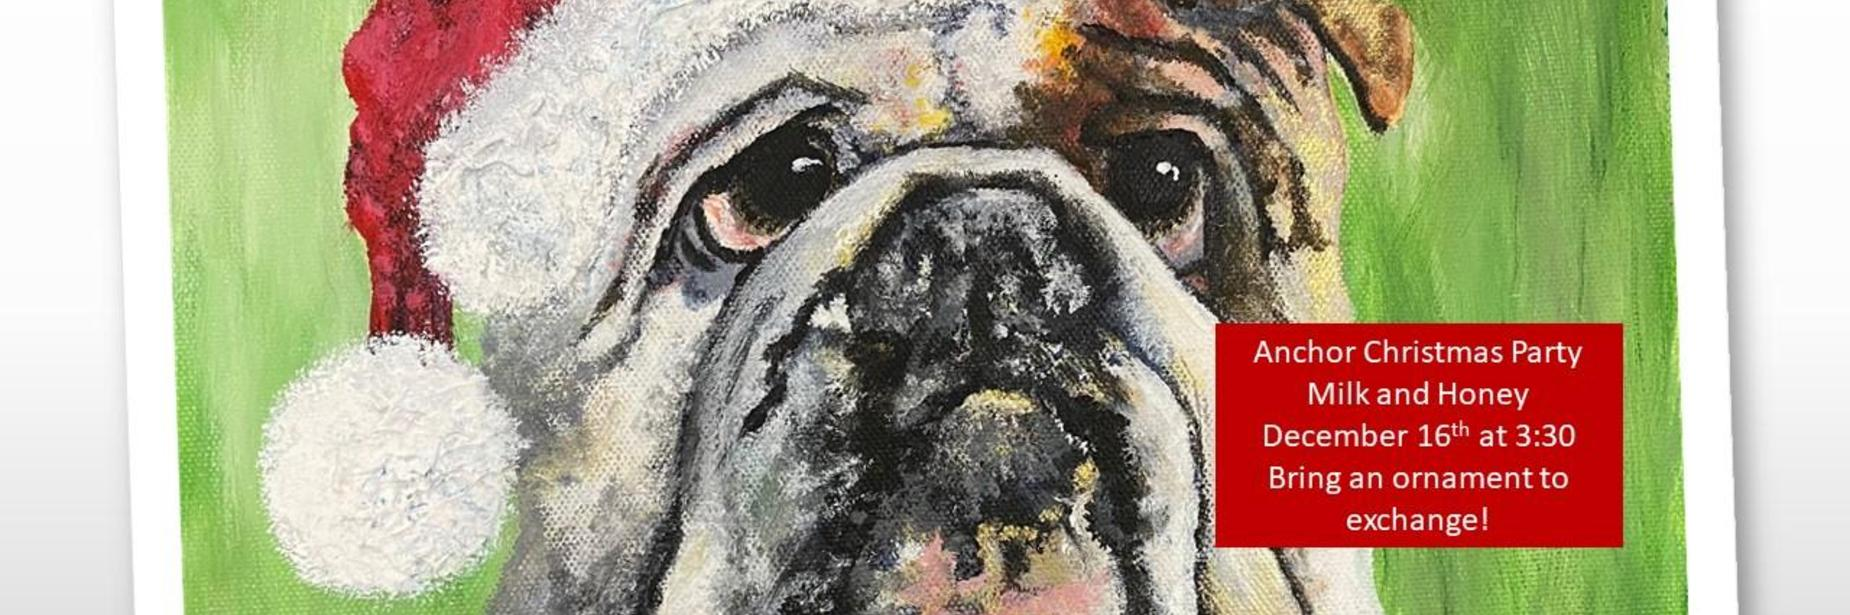 bulldog with santa hat: Anchor Christmas Party at Milk and Honey on December 16th at 3:30.  Bring an ornament to exchange.